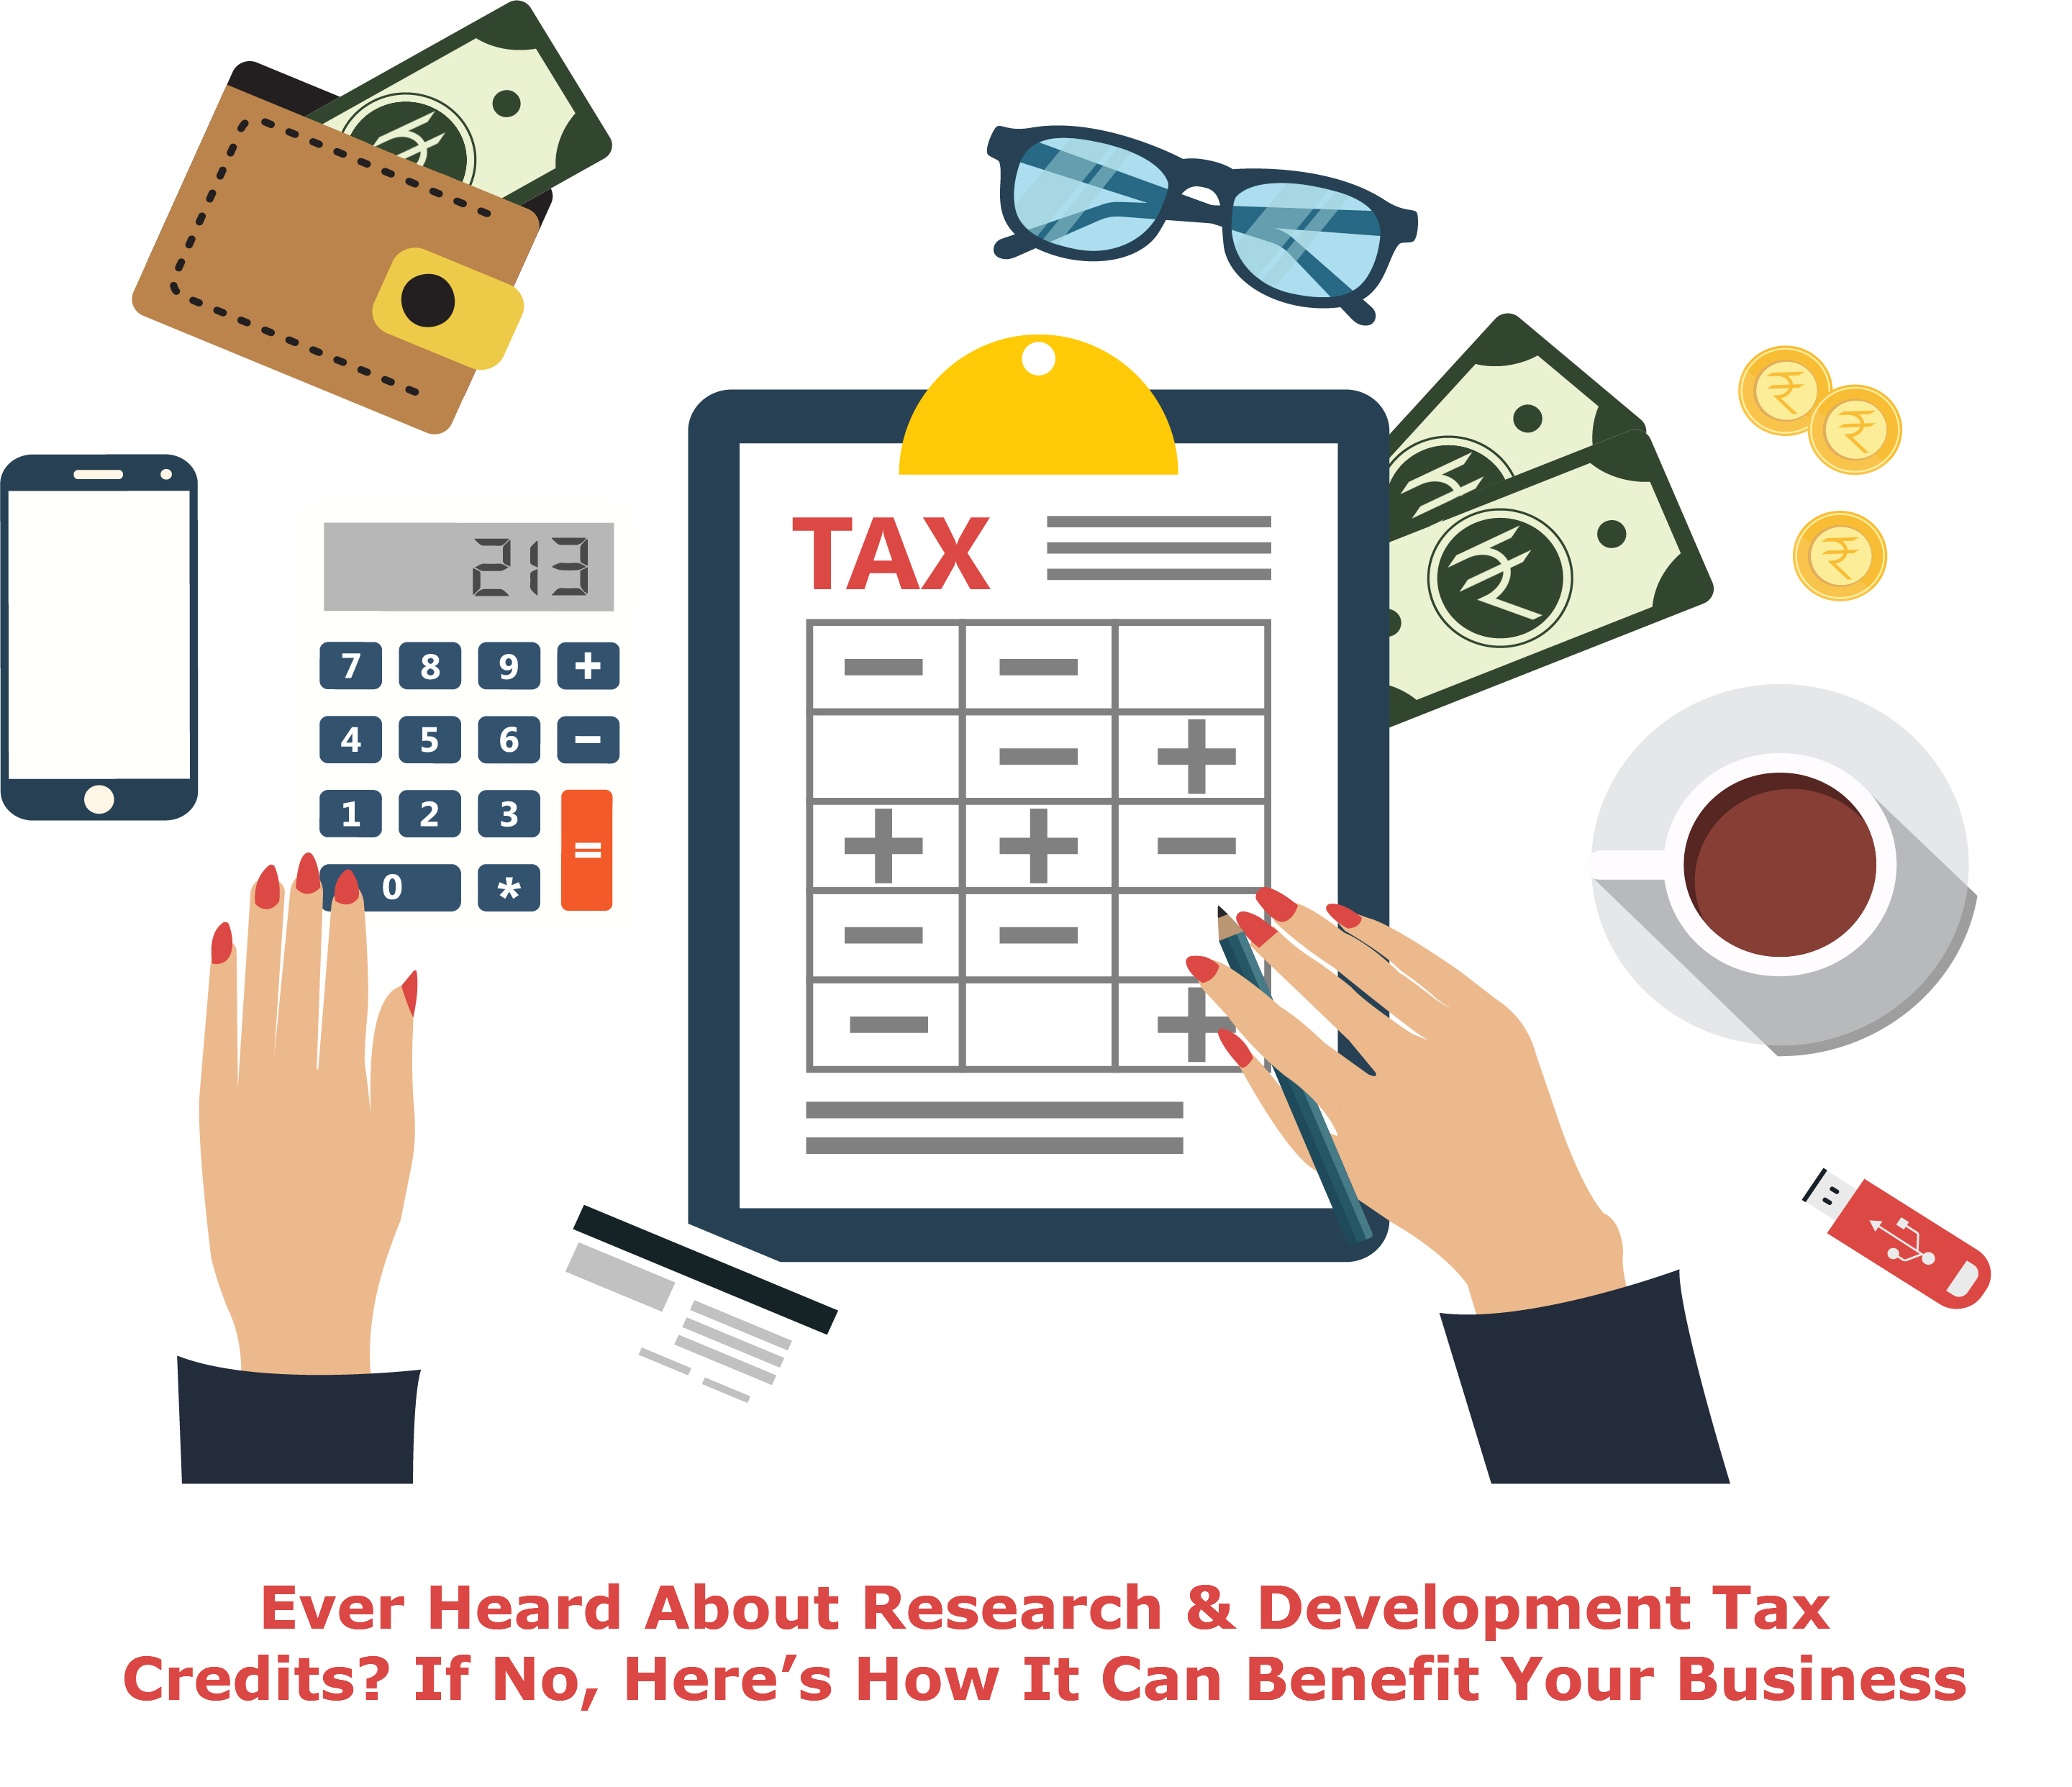 Ever Heard About Research & Development Tax Credits? If No, Here's How It Can Benefit Your Business